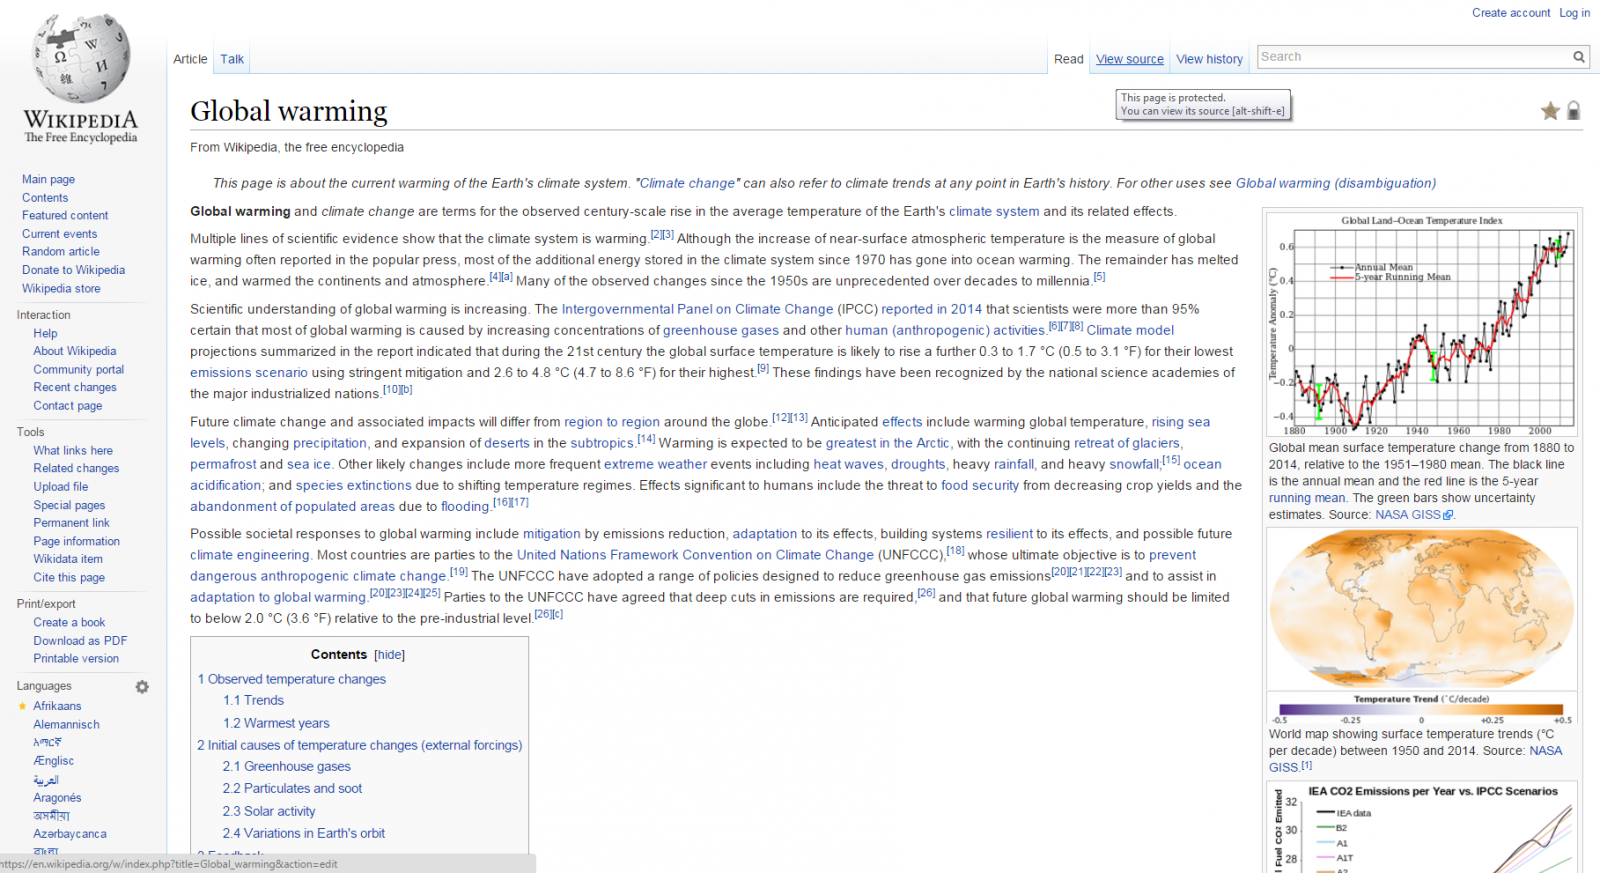 Wikipedia Global Warming page